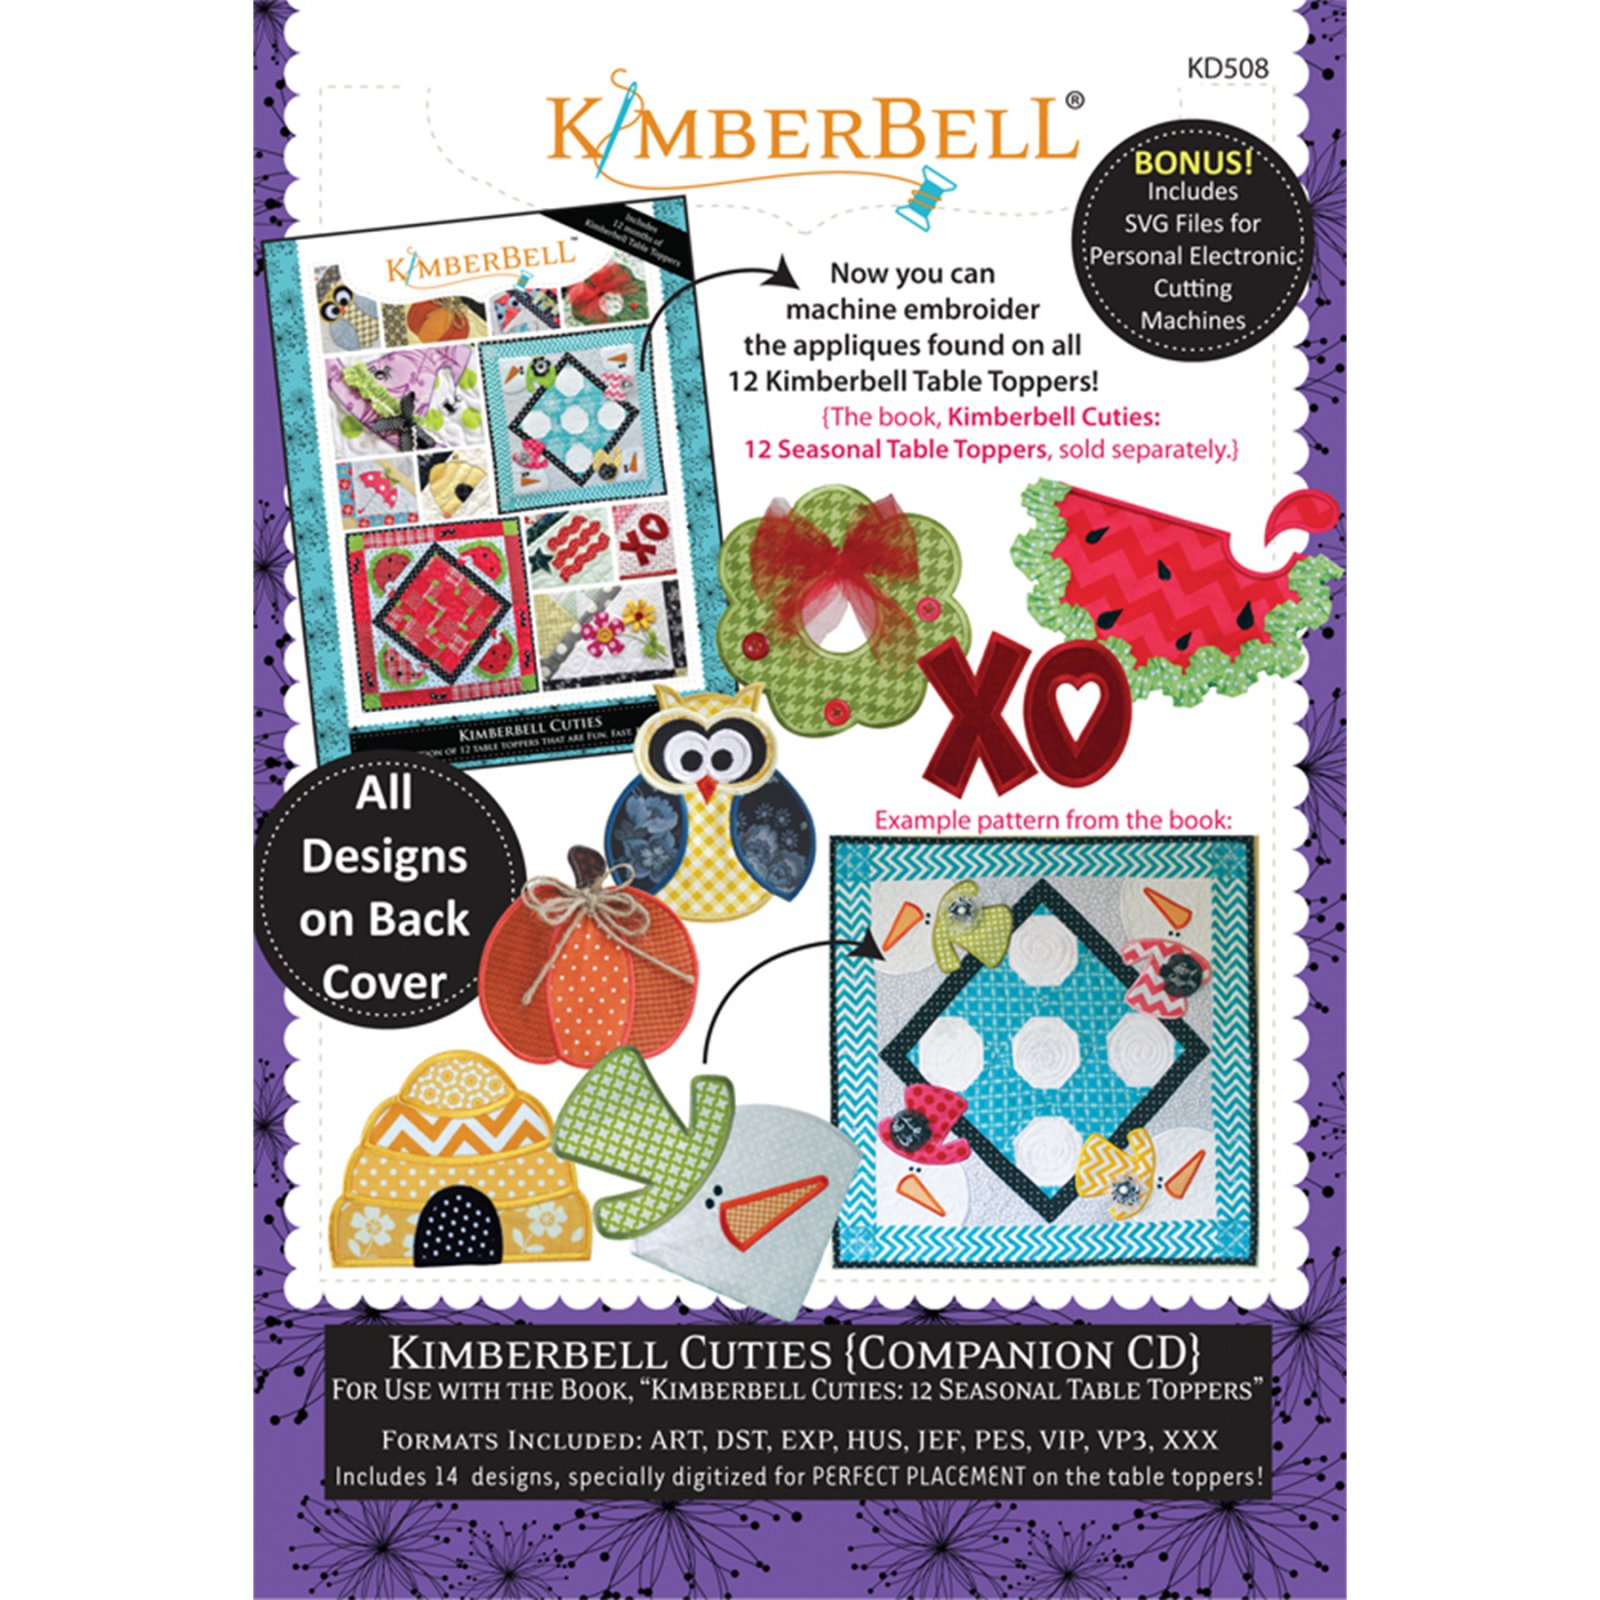 KimberBell Cuties Companion CD